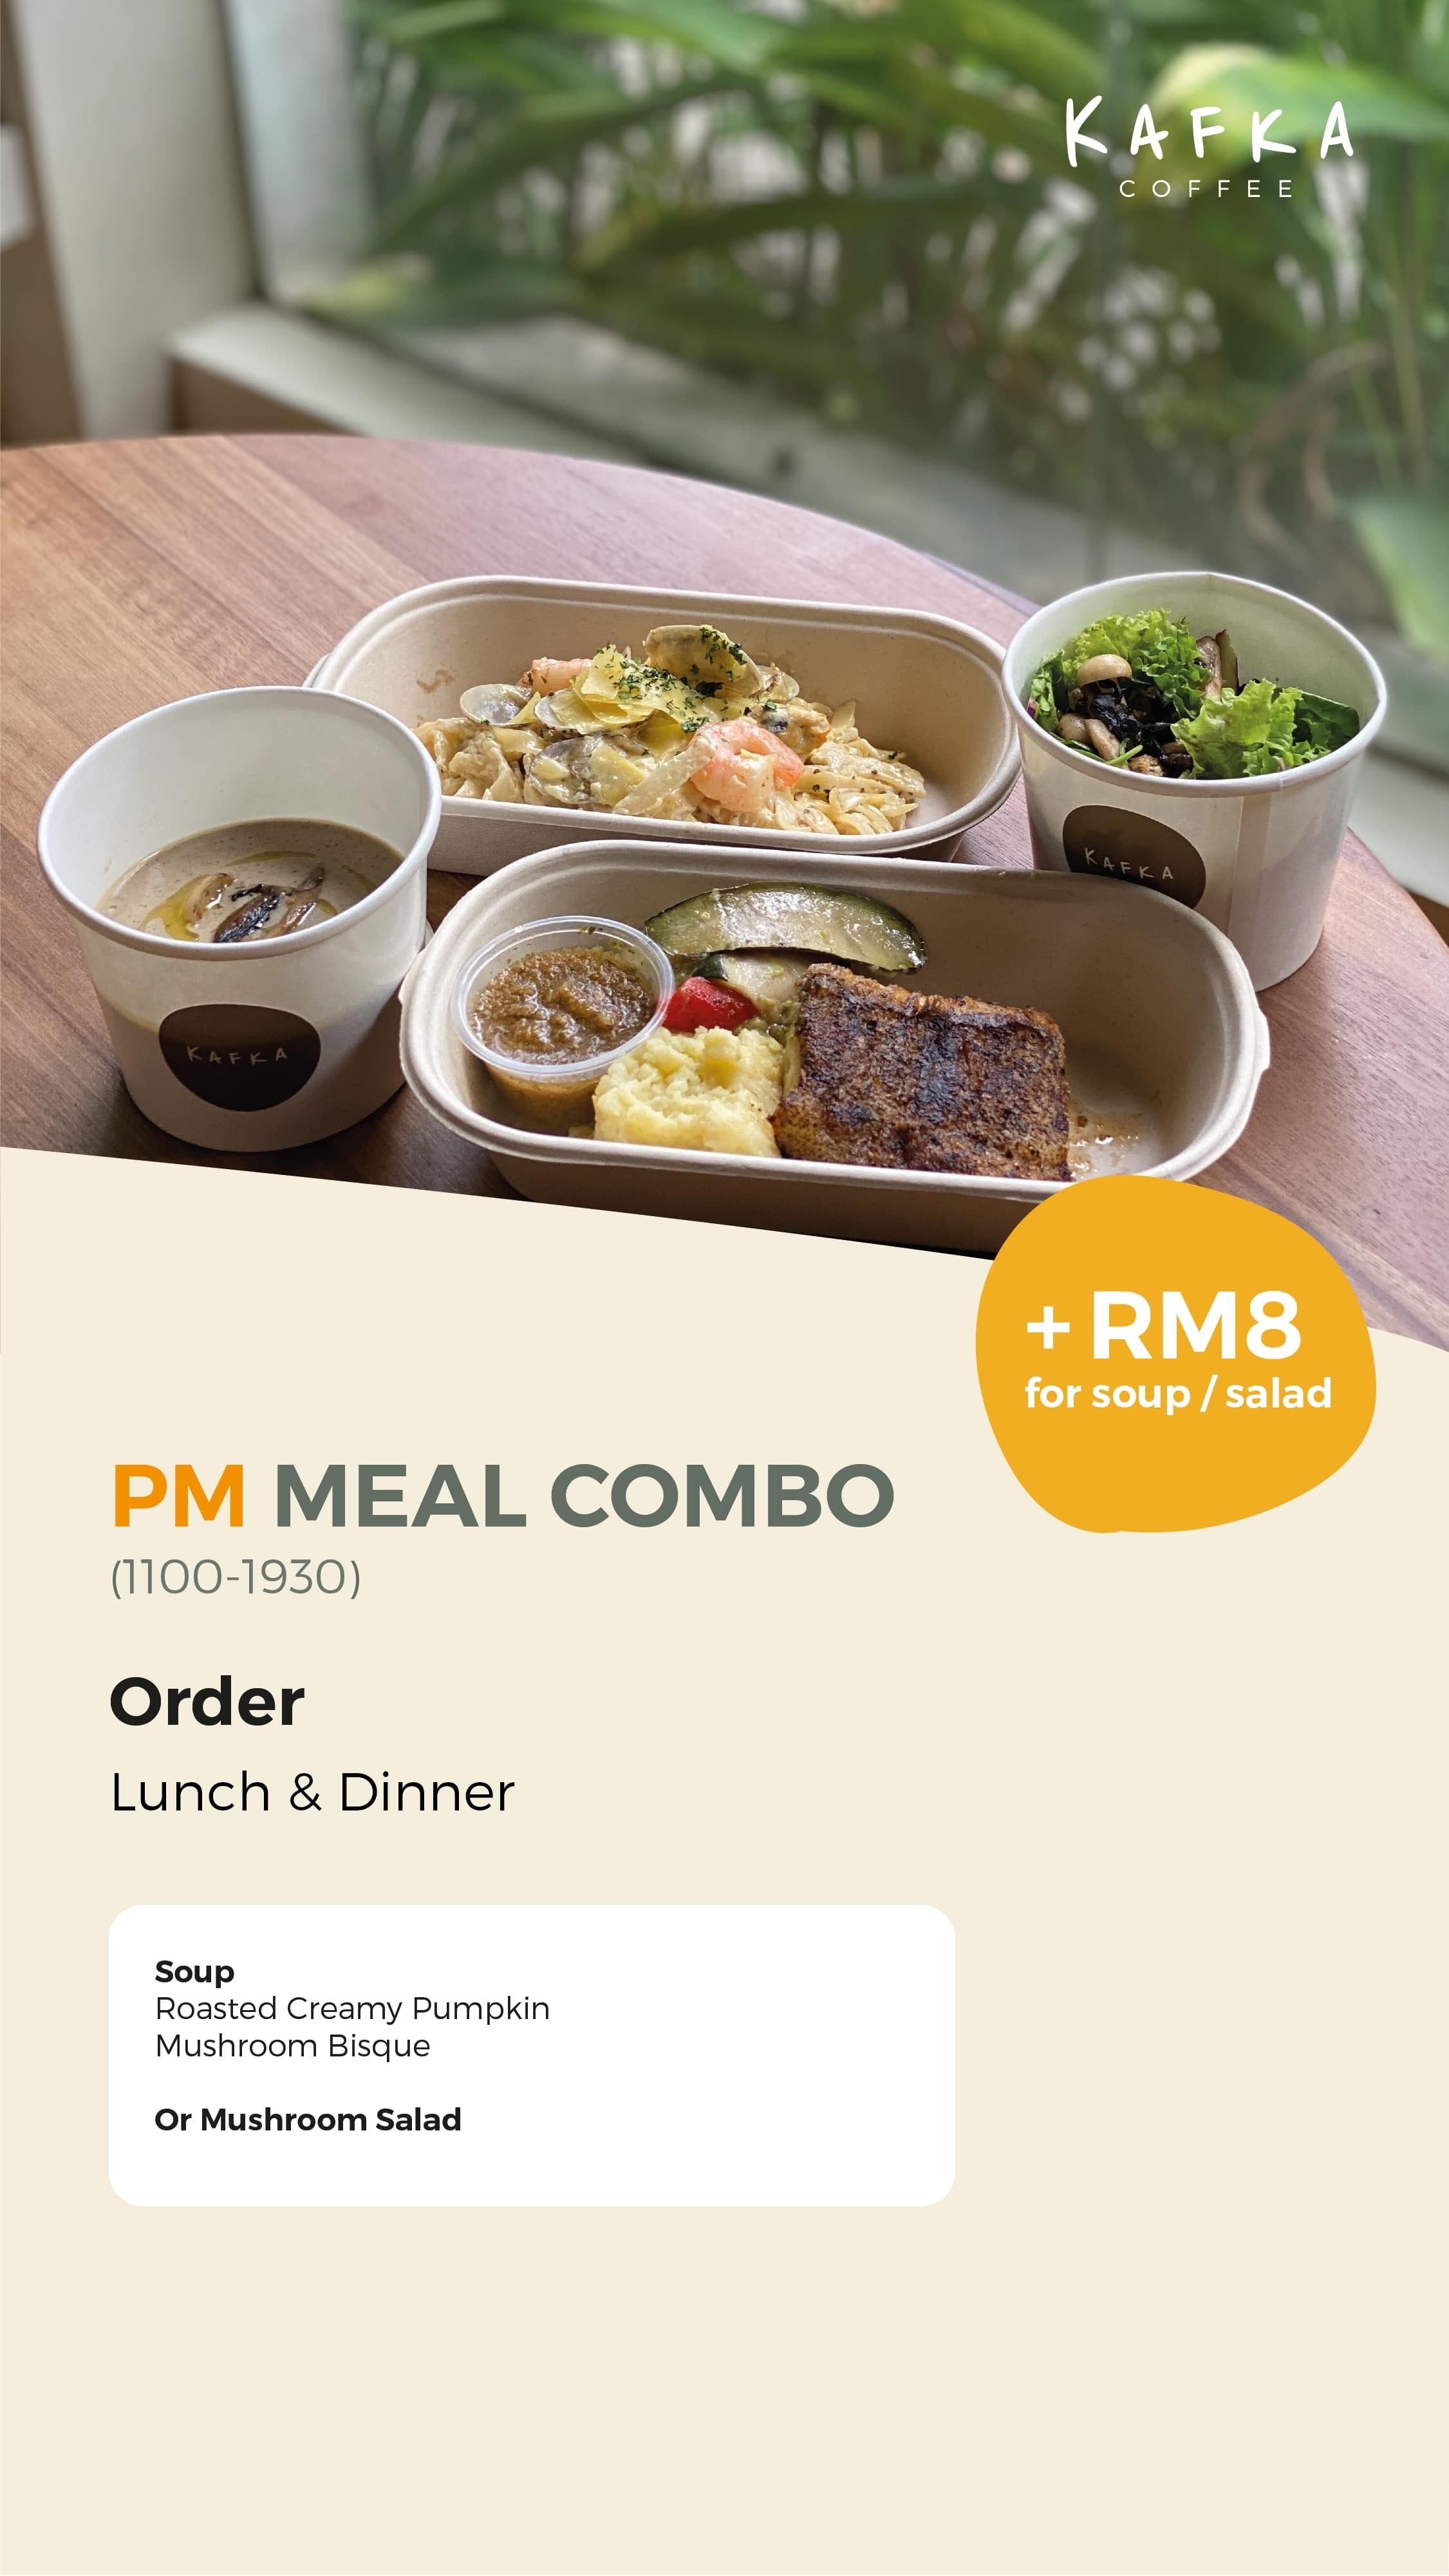 PM Meal Combo by Kafka Cafe